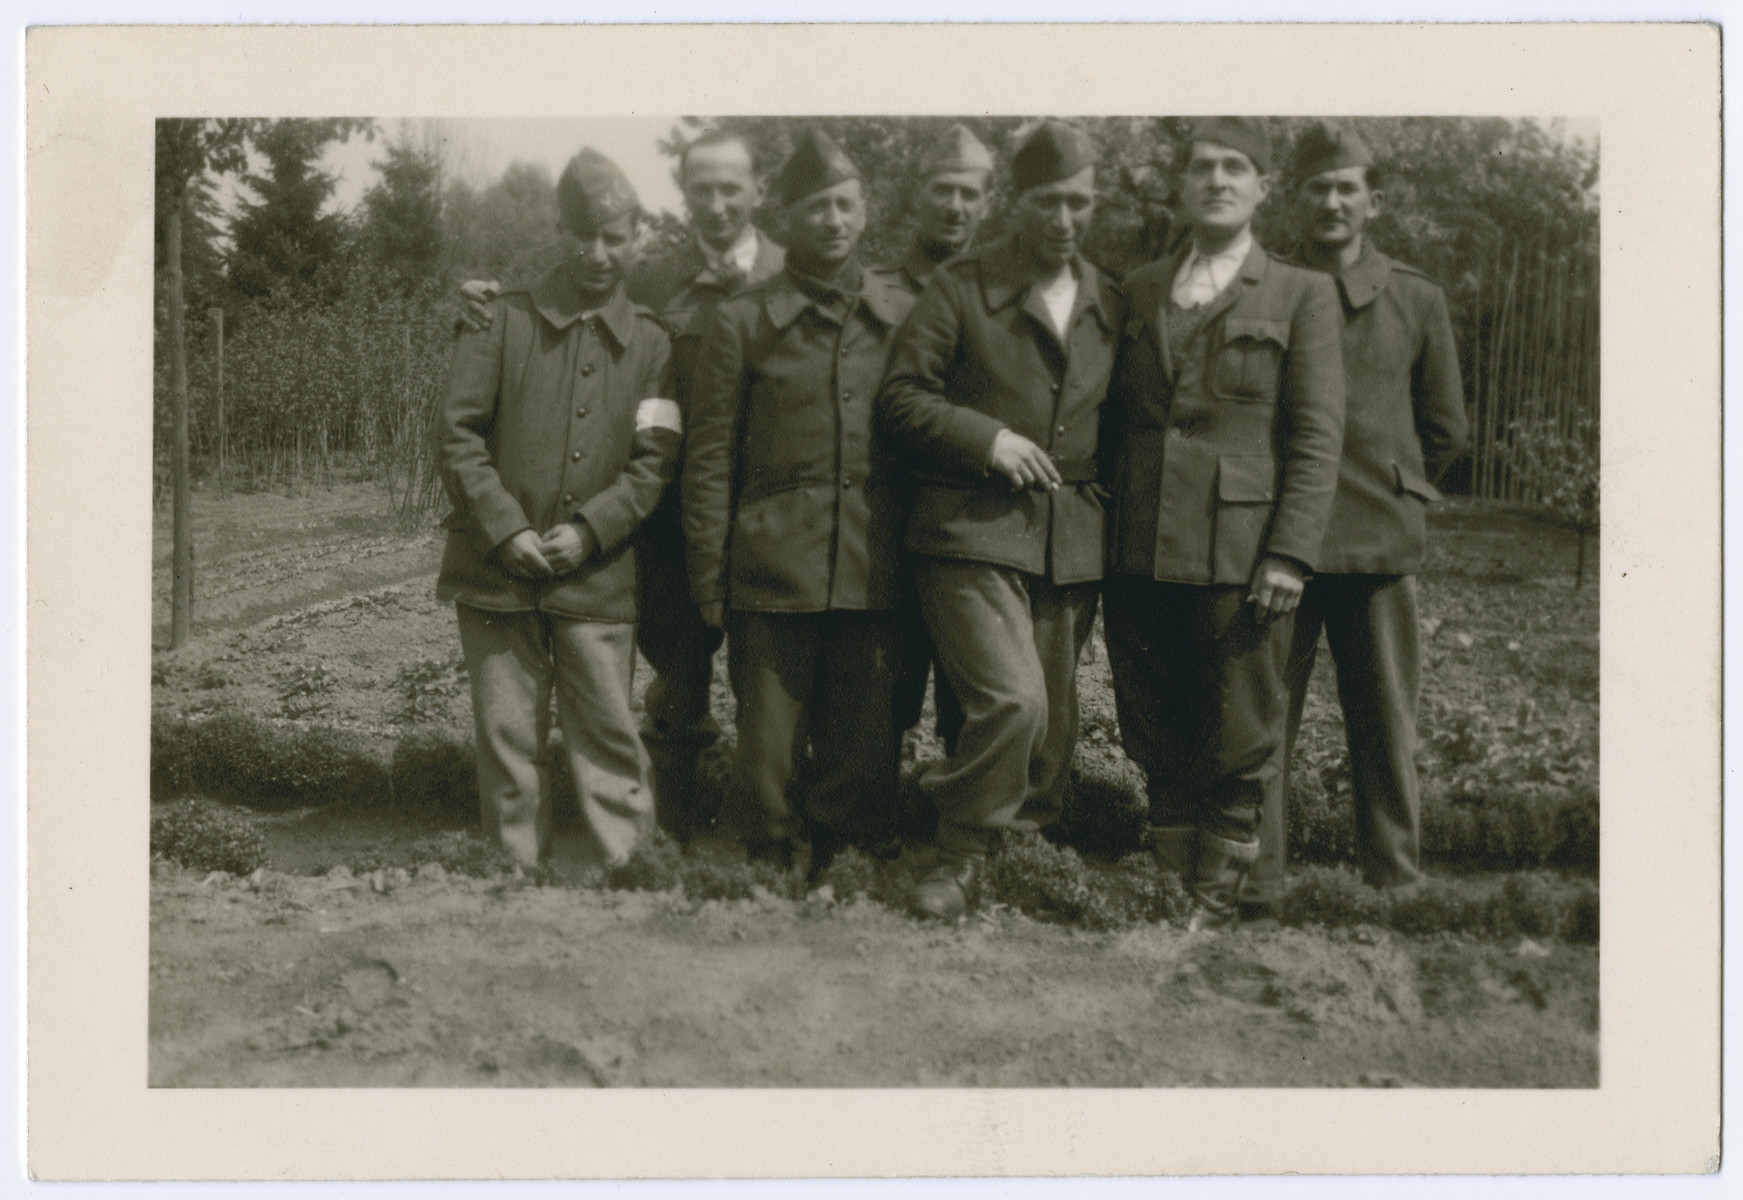 Group portrait of Belgian POWS in Stalag 10 C.  Henry Kahn is pictured second from the left.